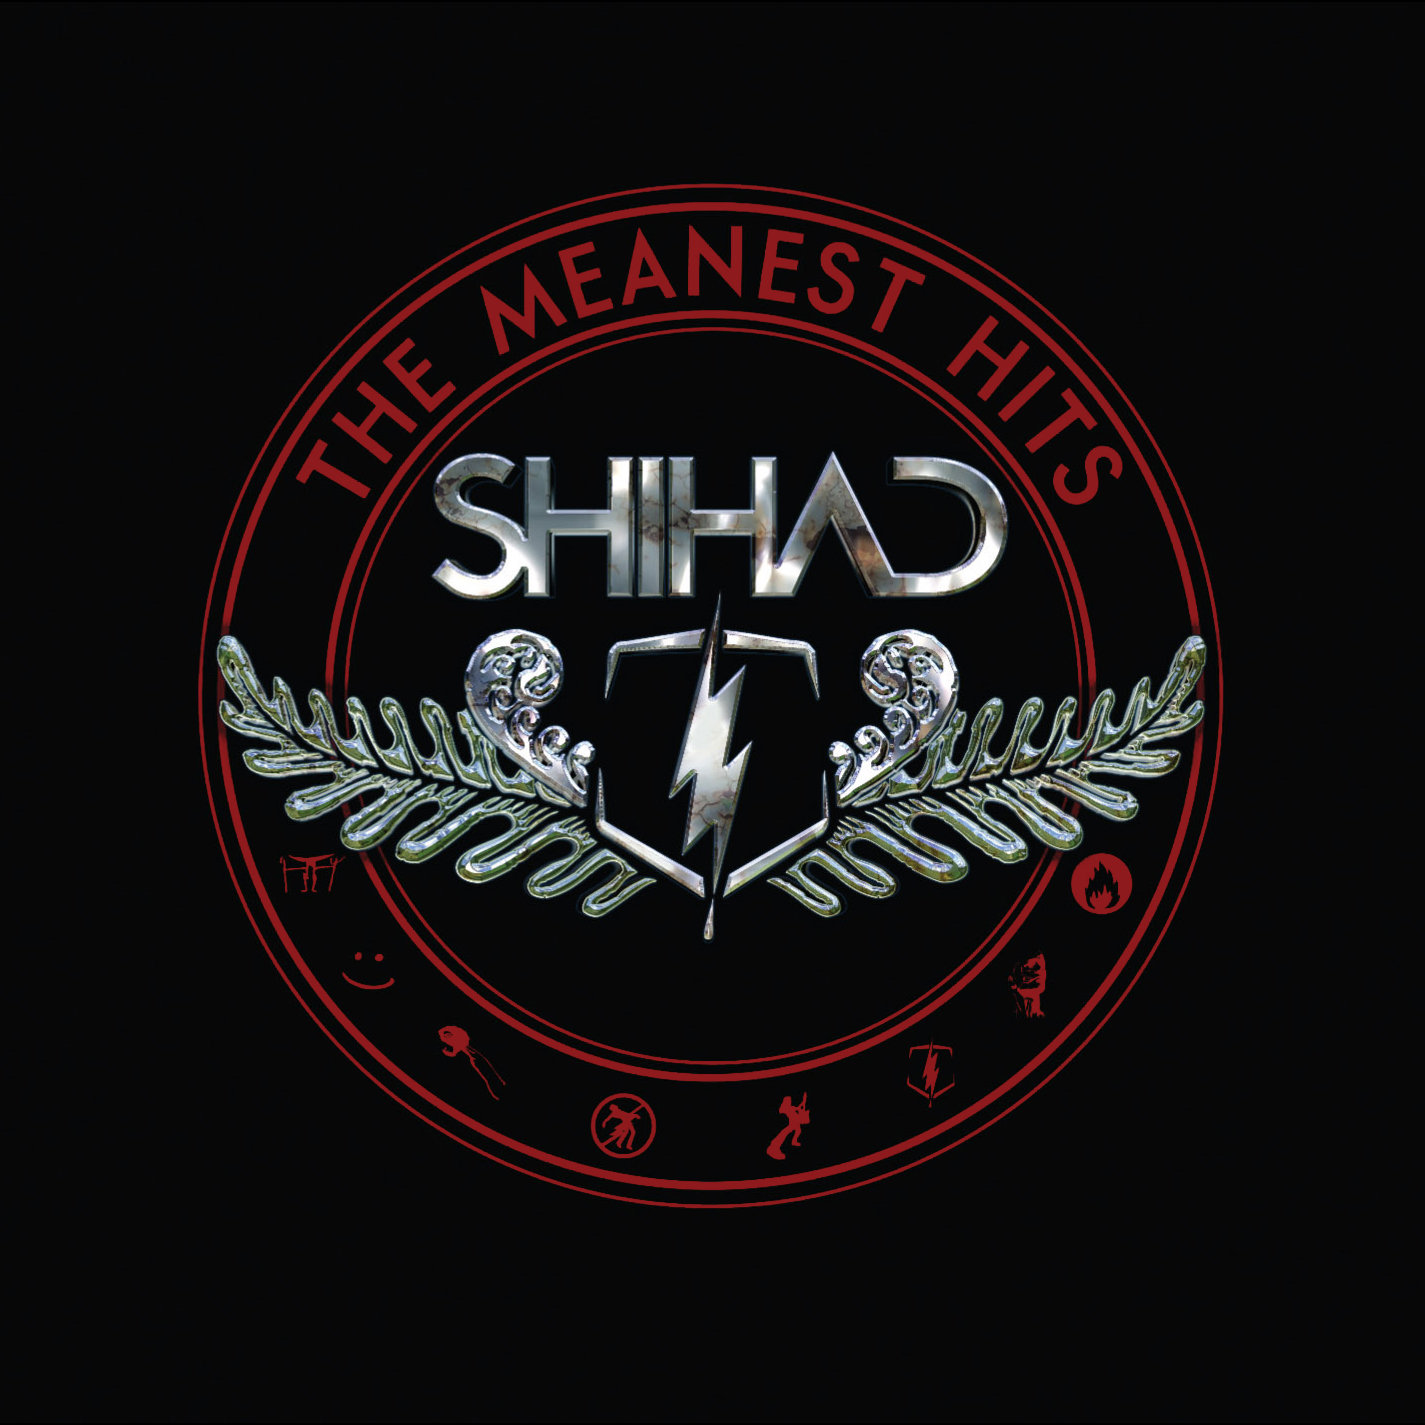 SHIHAD - MEANESTSTD CD PSHOT.jpg